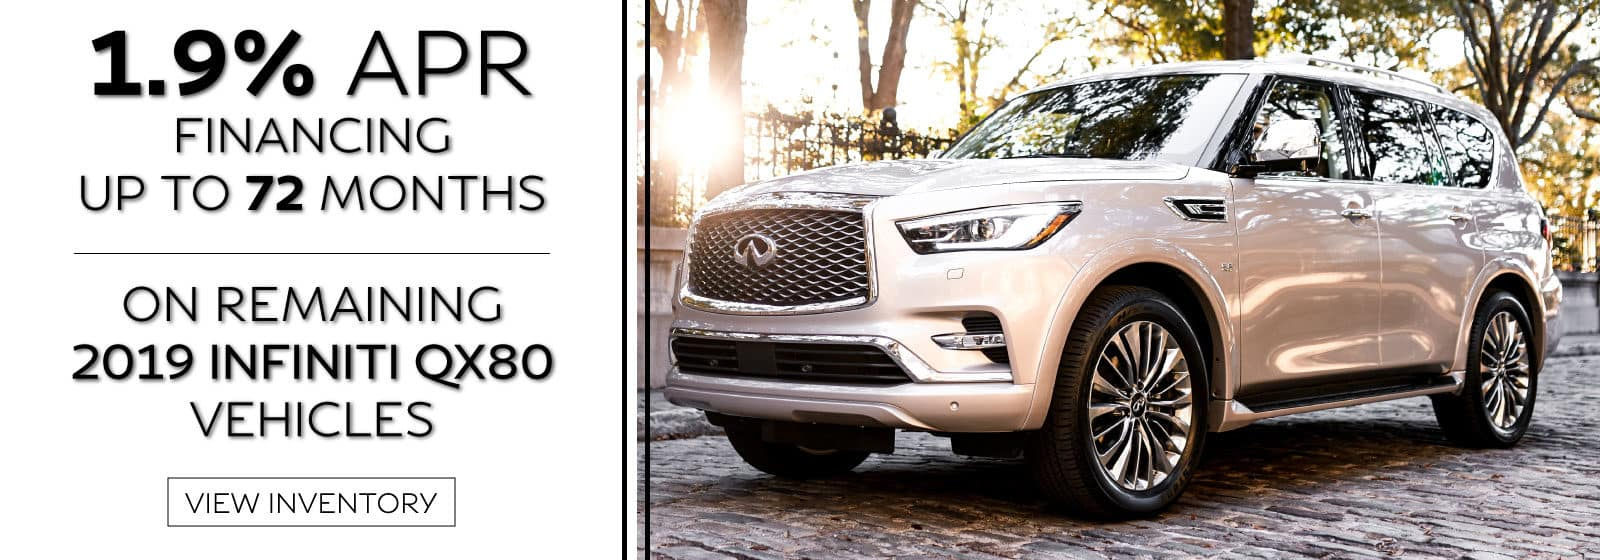 1.9% APR for up to 72 months on 2019 QX80 vehicles